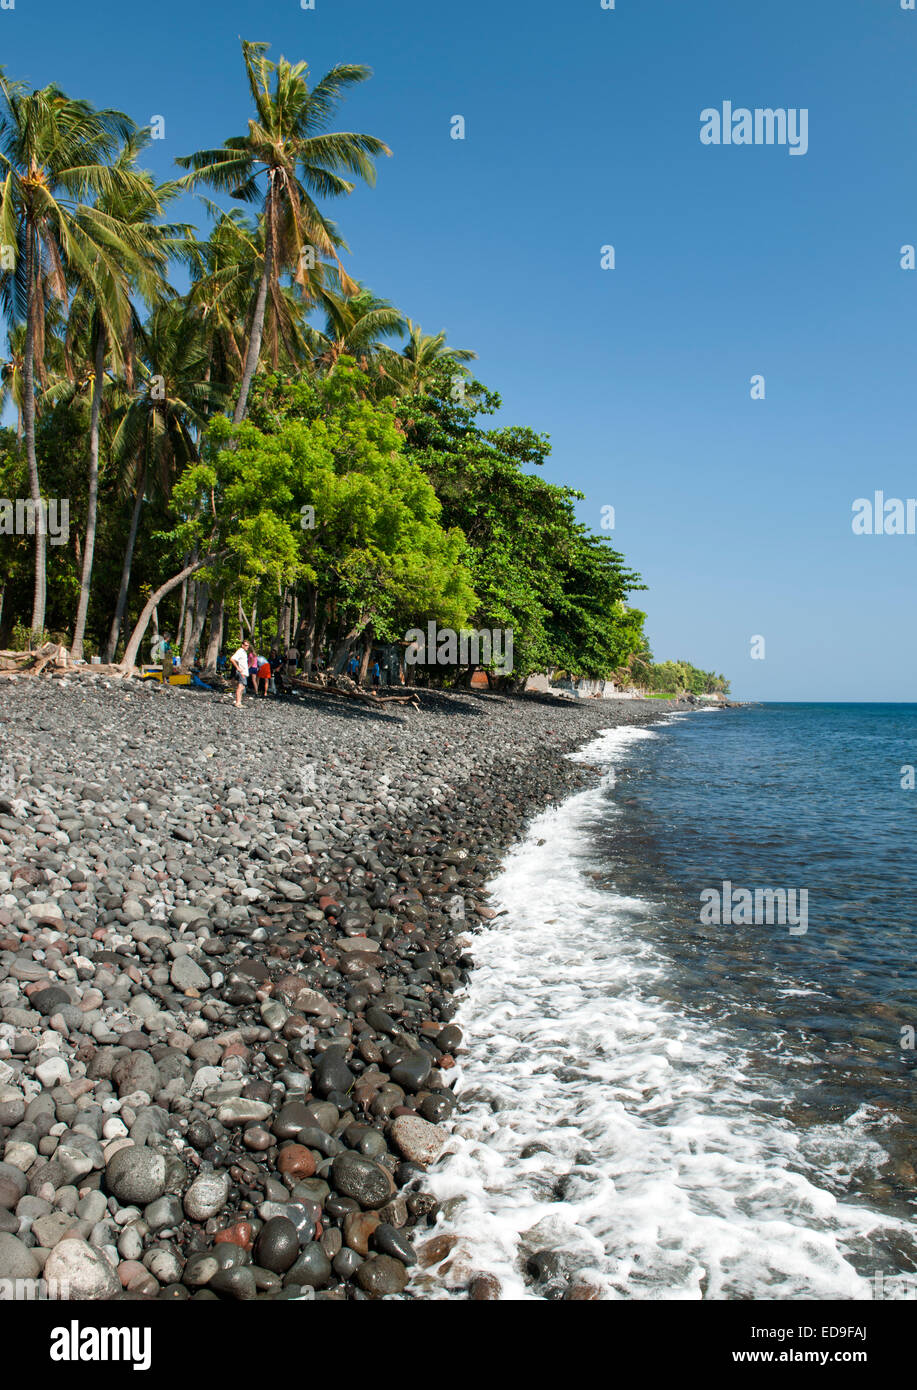 The rocky beach at Tulamben near Amed on the northeastern coast of Bali, Indonesia. - Stock Image